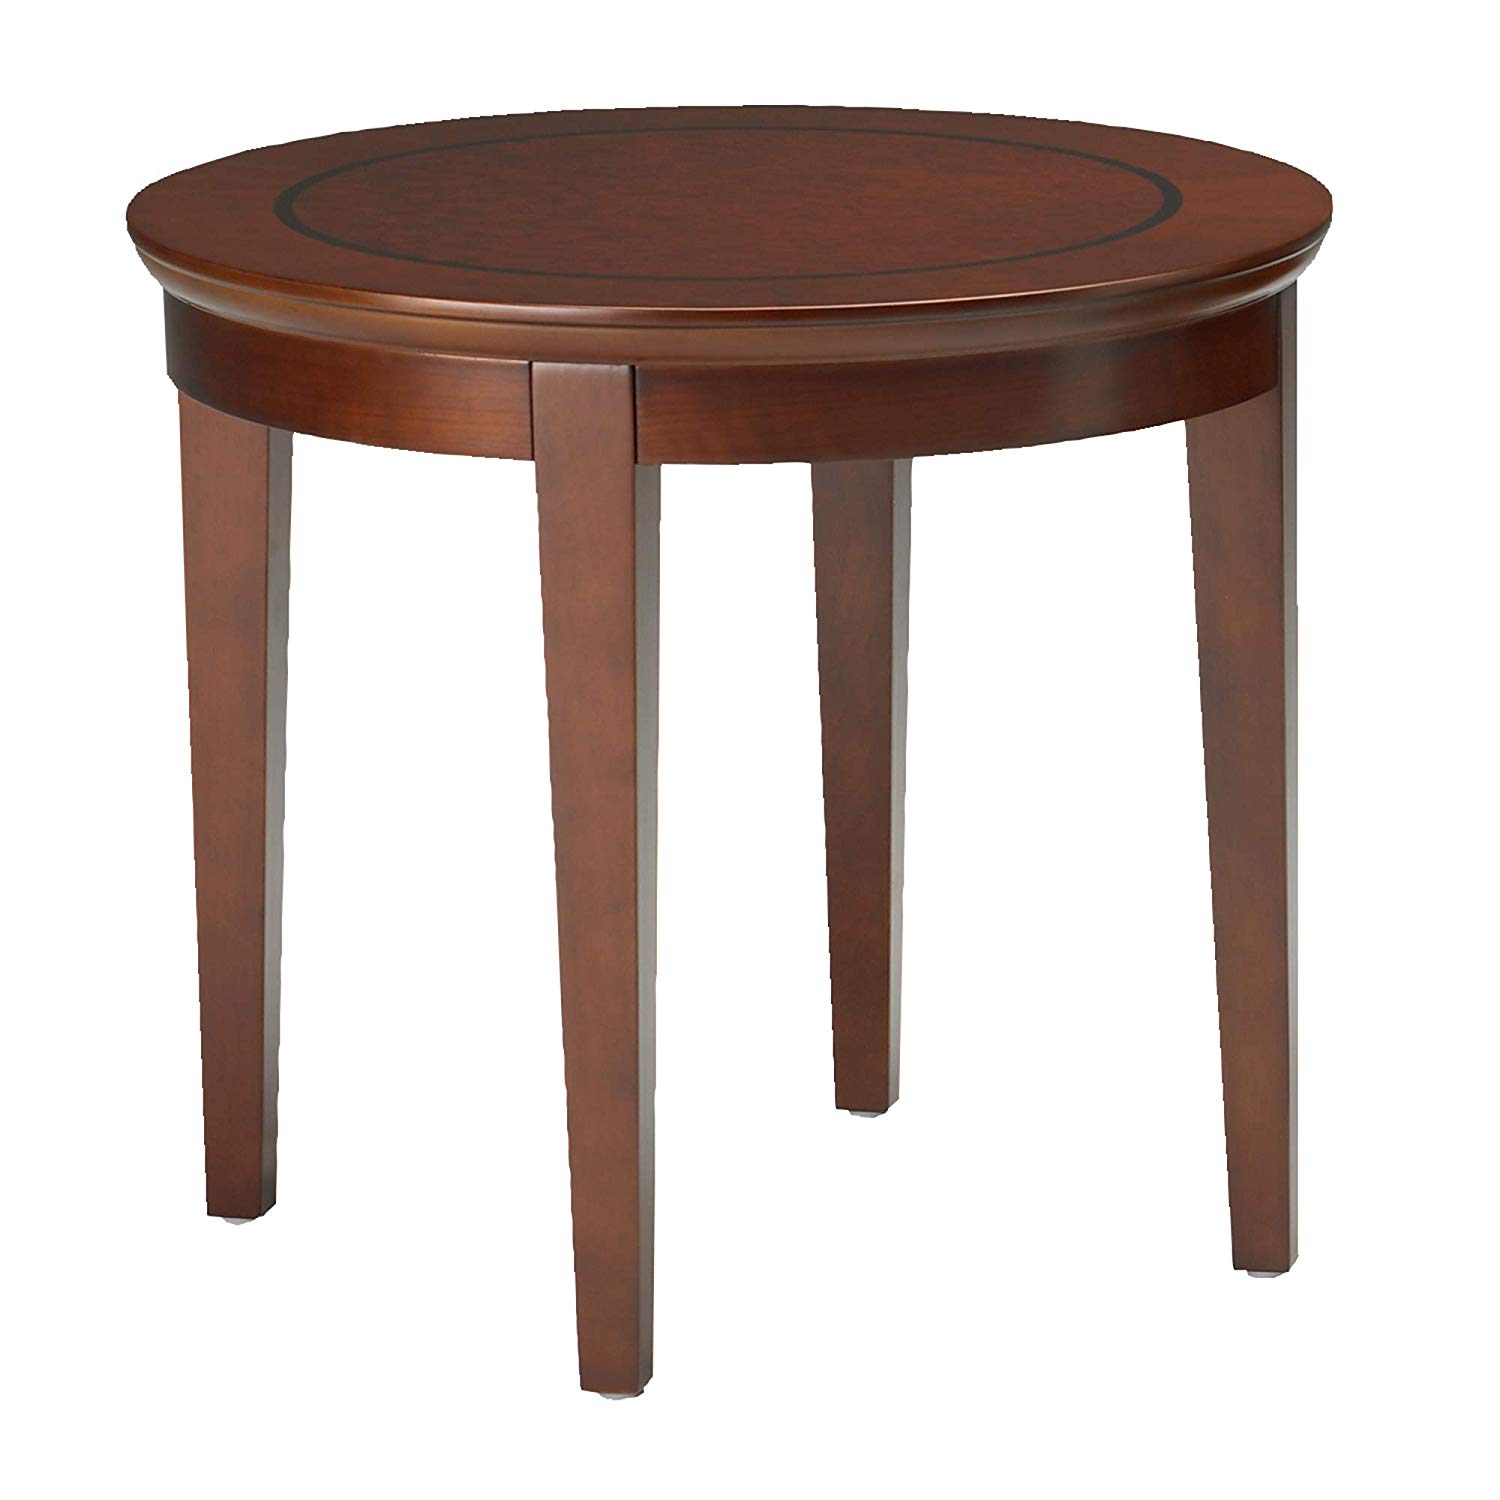 line setscr sorrento round end table bourbon cherry finish veneer kitchen dining leather theater seating brass accent mission style furniture plans plexi coffee mainstays console